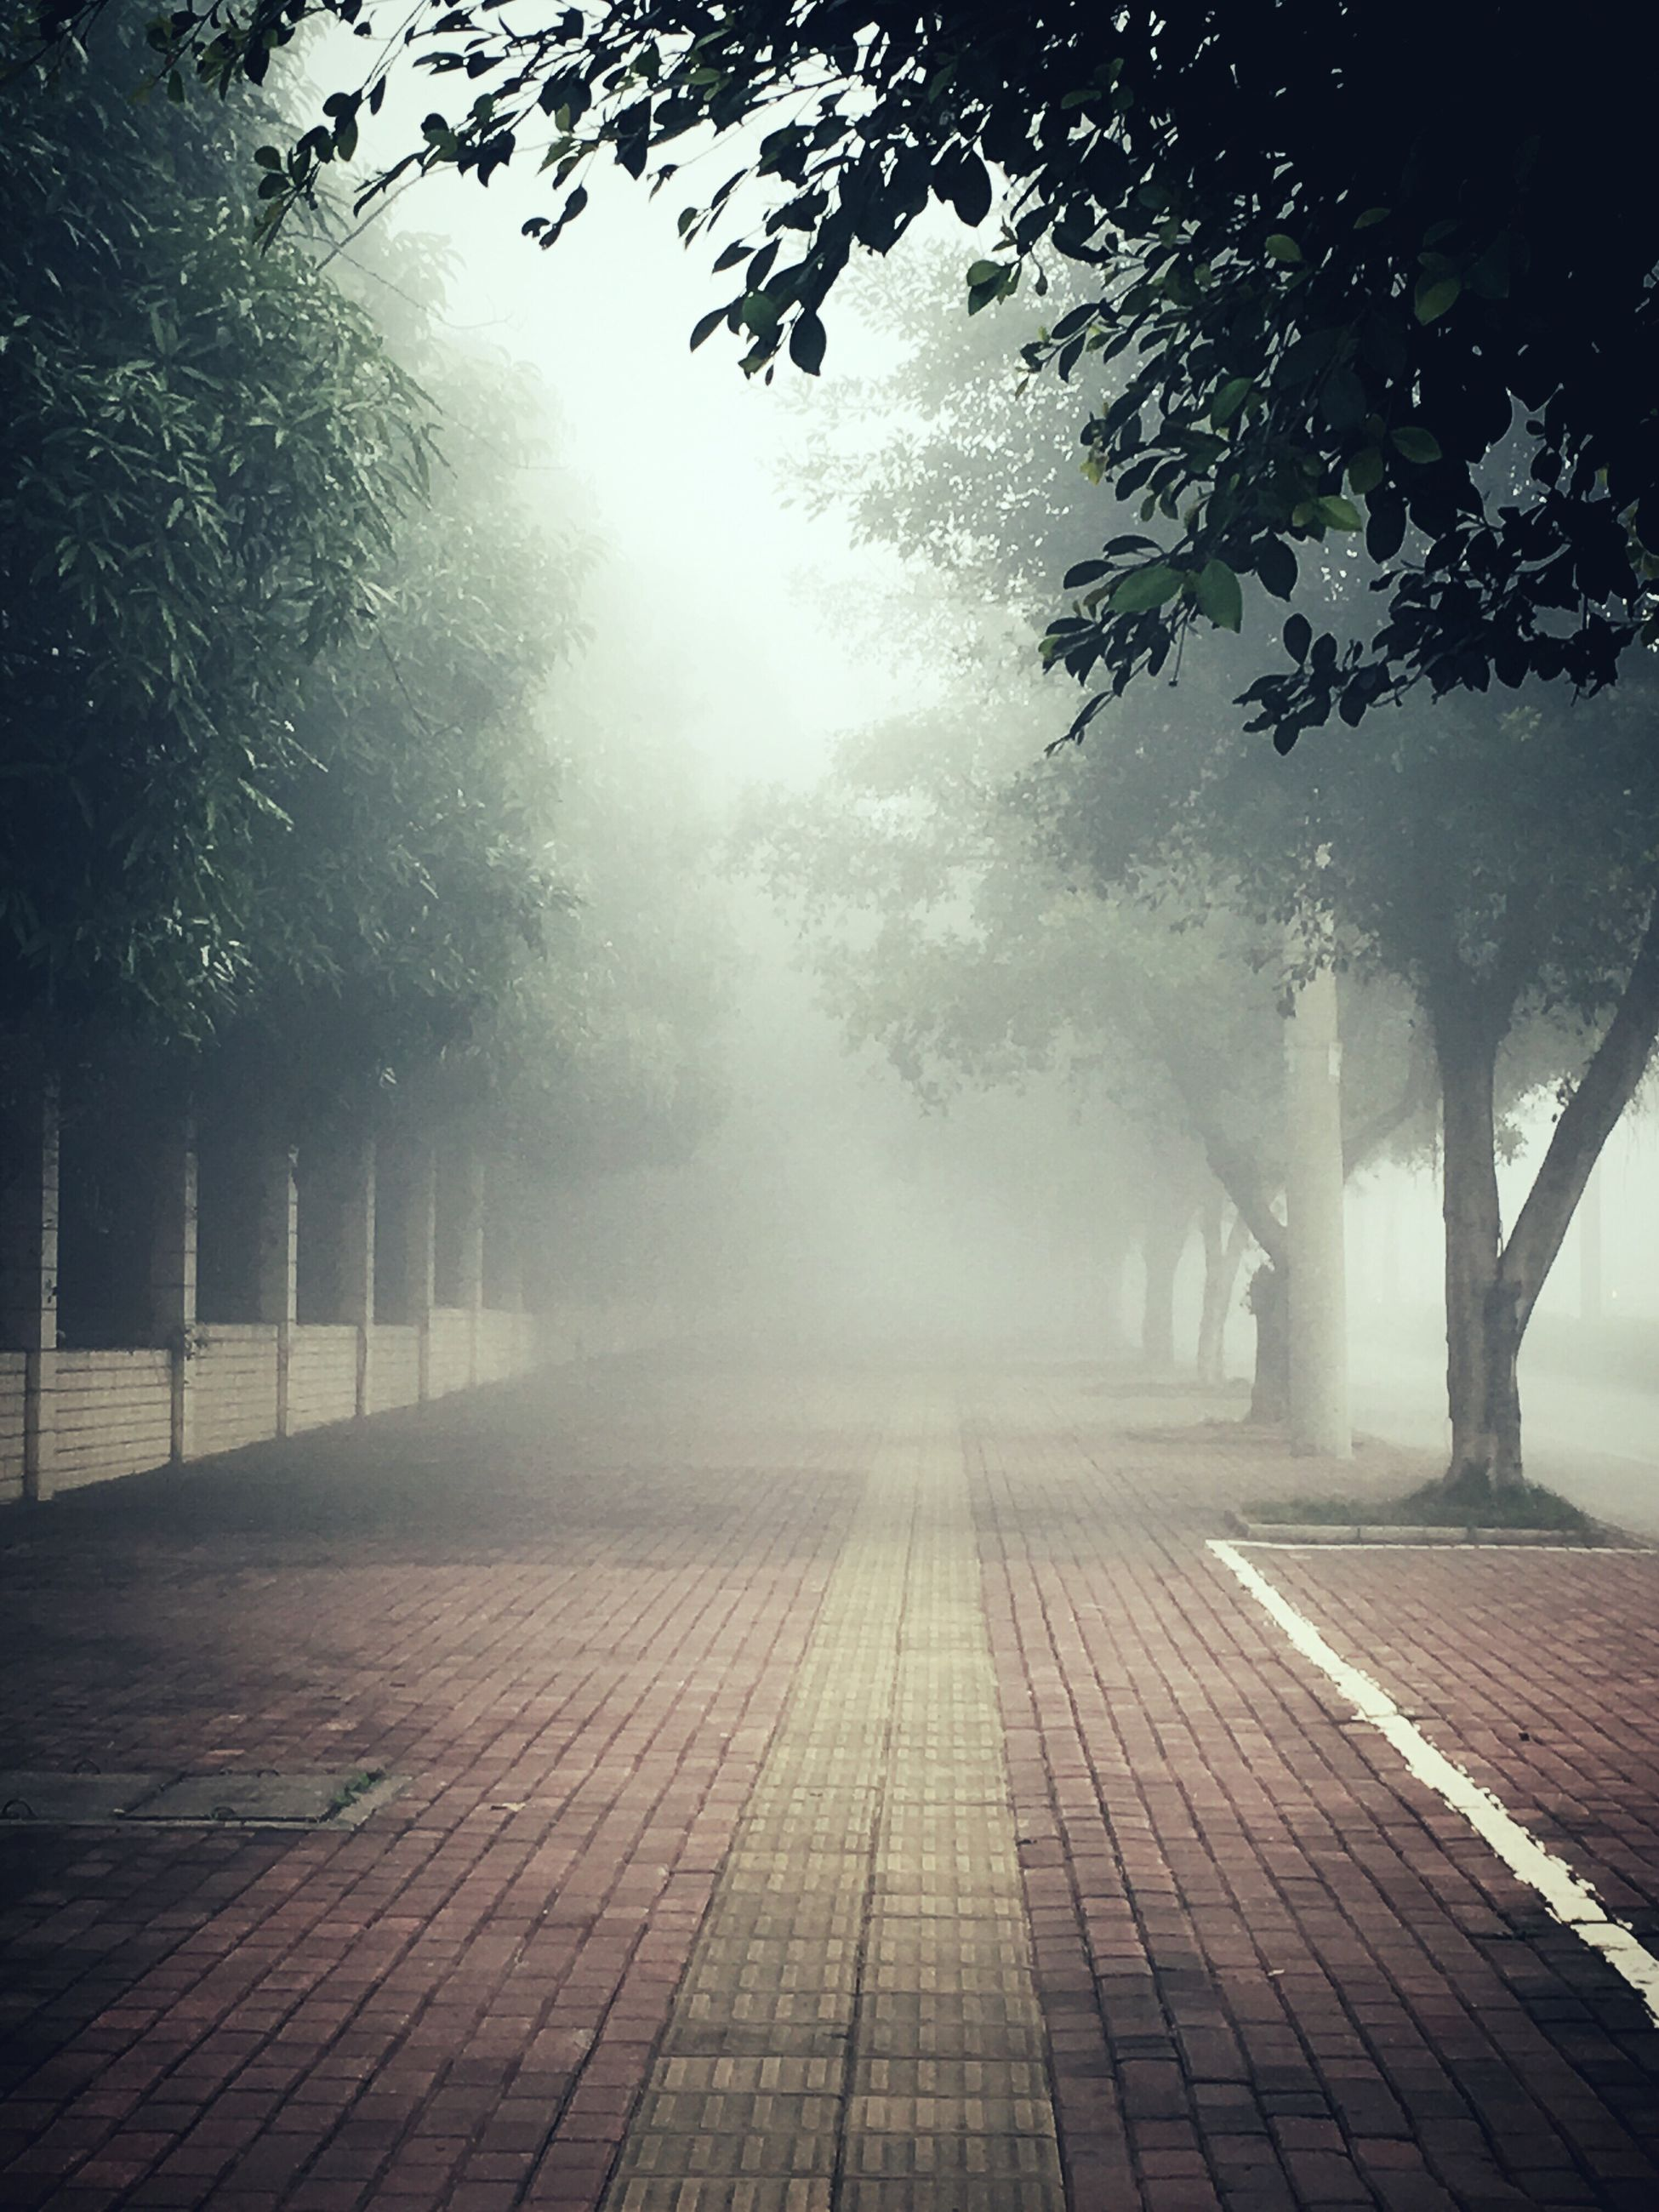 tree, fog, the way forward, foggy, weather, nature, sunlight, tranquility, sunbeam, footpath, day, tranquil scene, diminishing perspective, branch, park - man made space, outdoors, season, sky, no people, railing